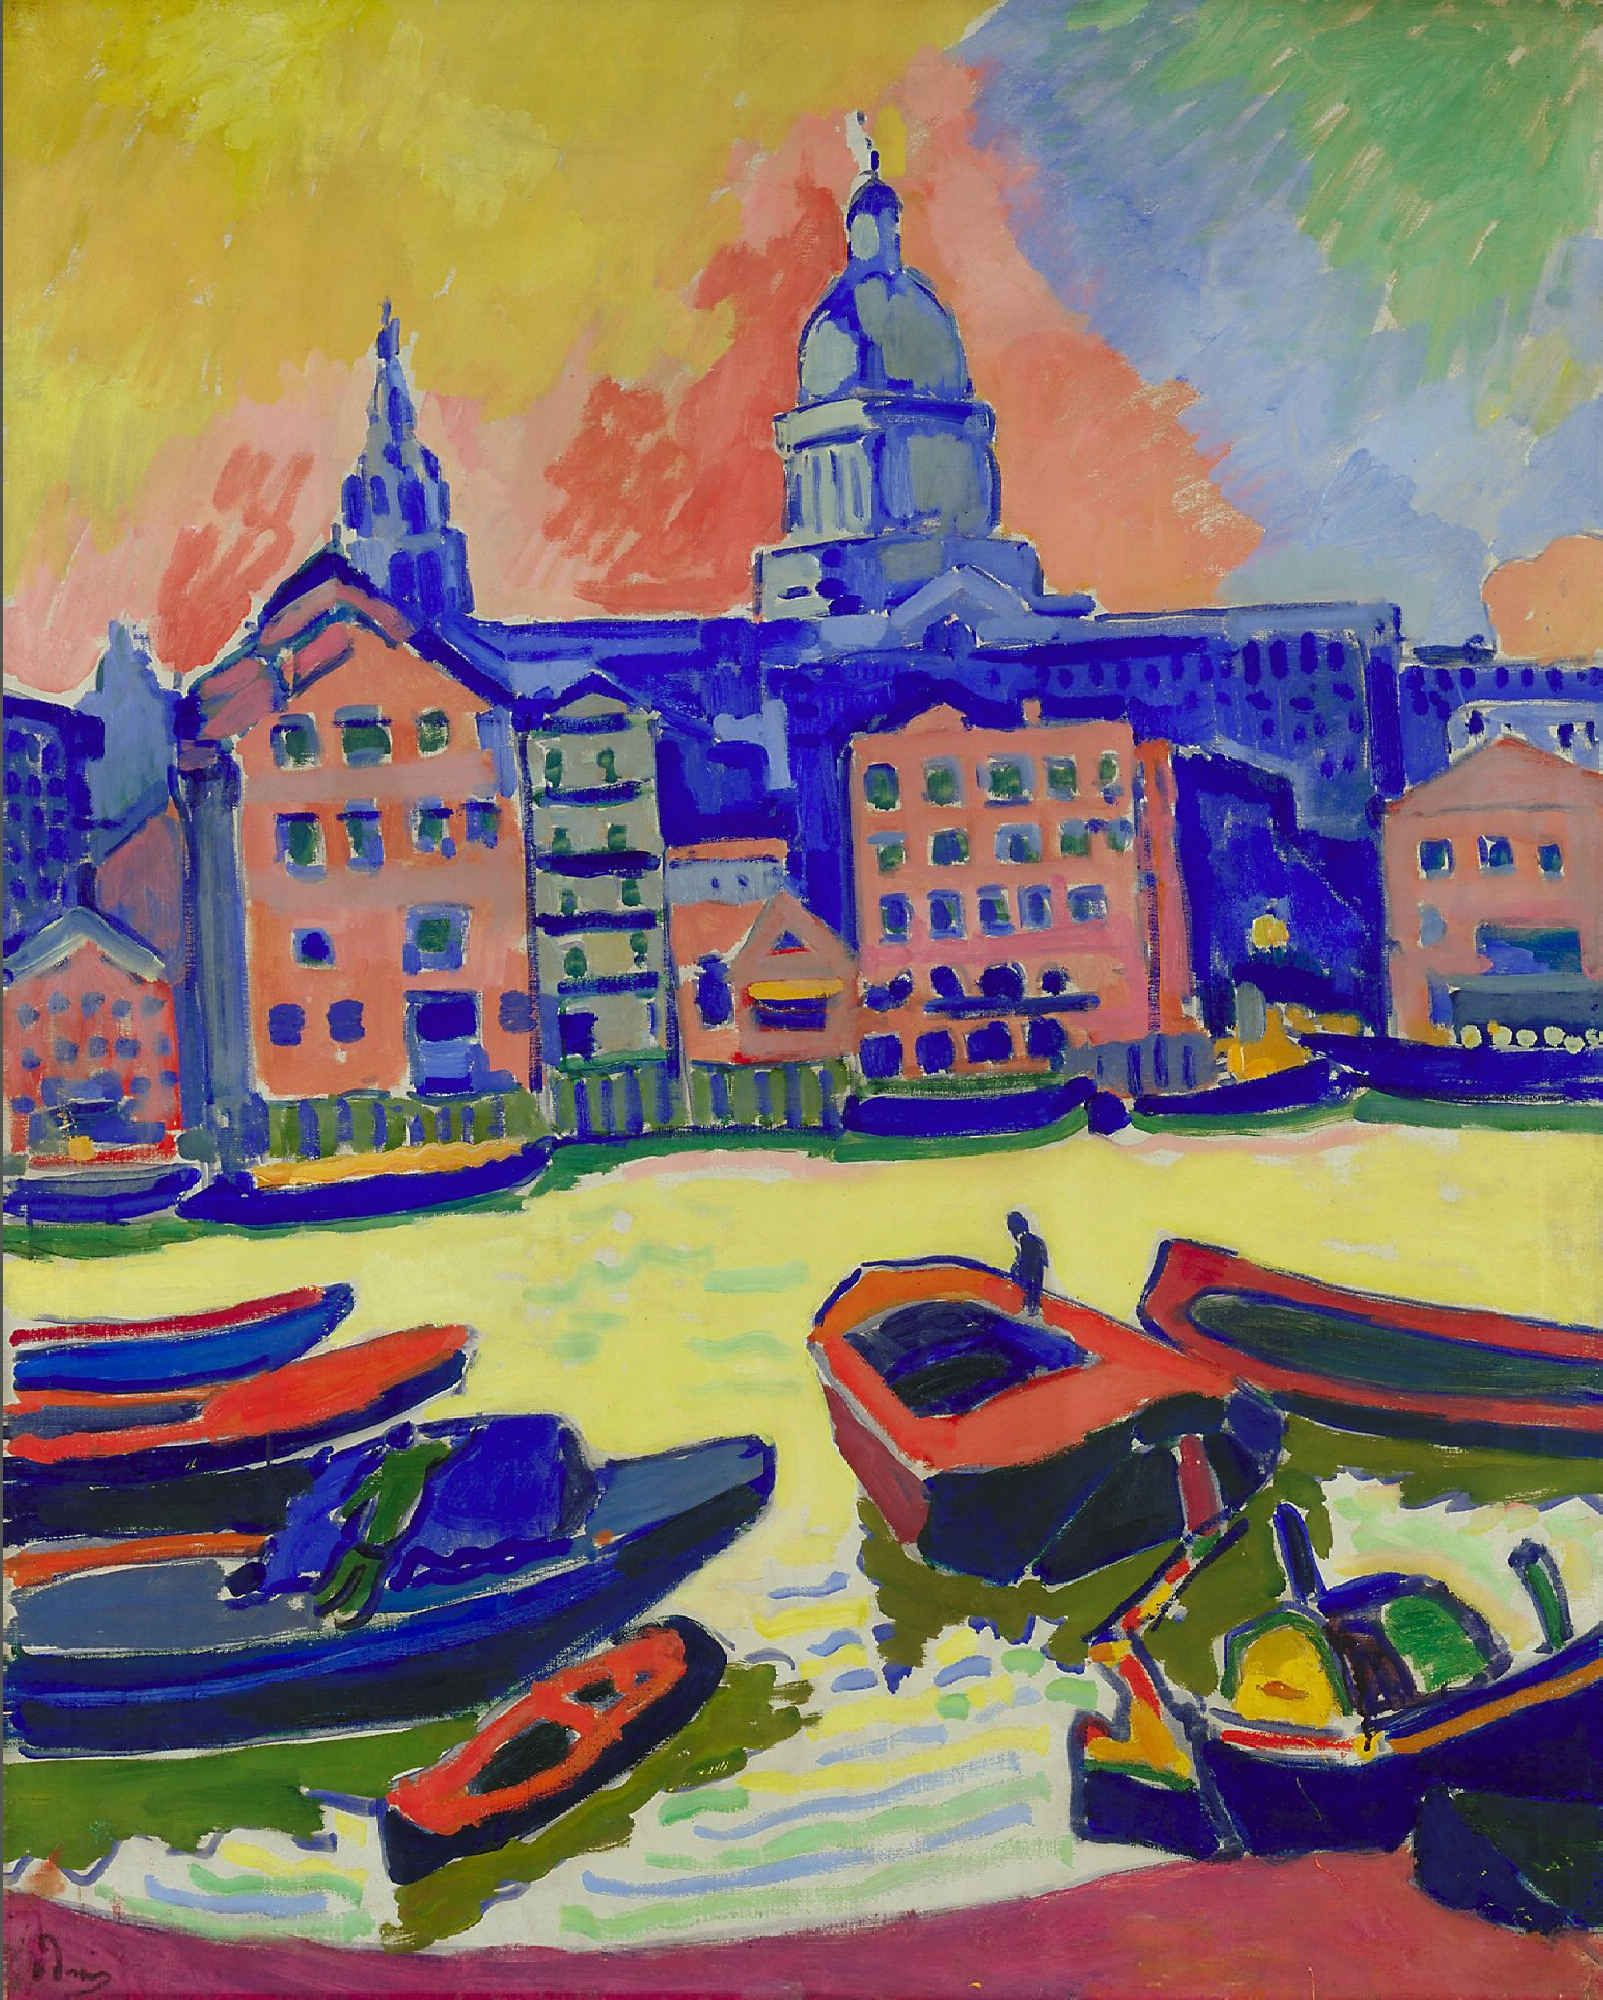 derain - 1906 st. paul's from the thames (institute of arts, minneapolis)